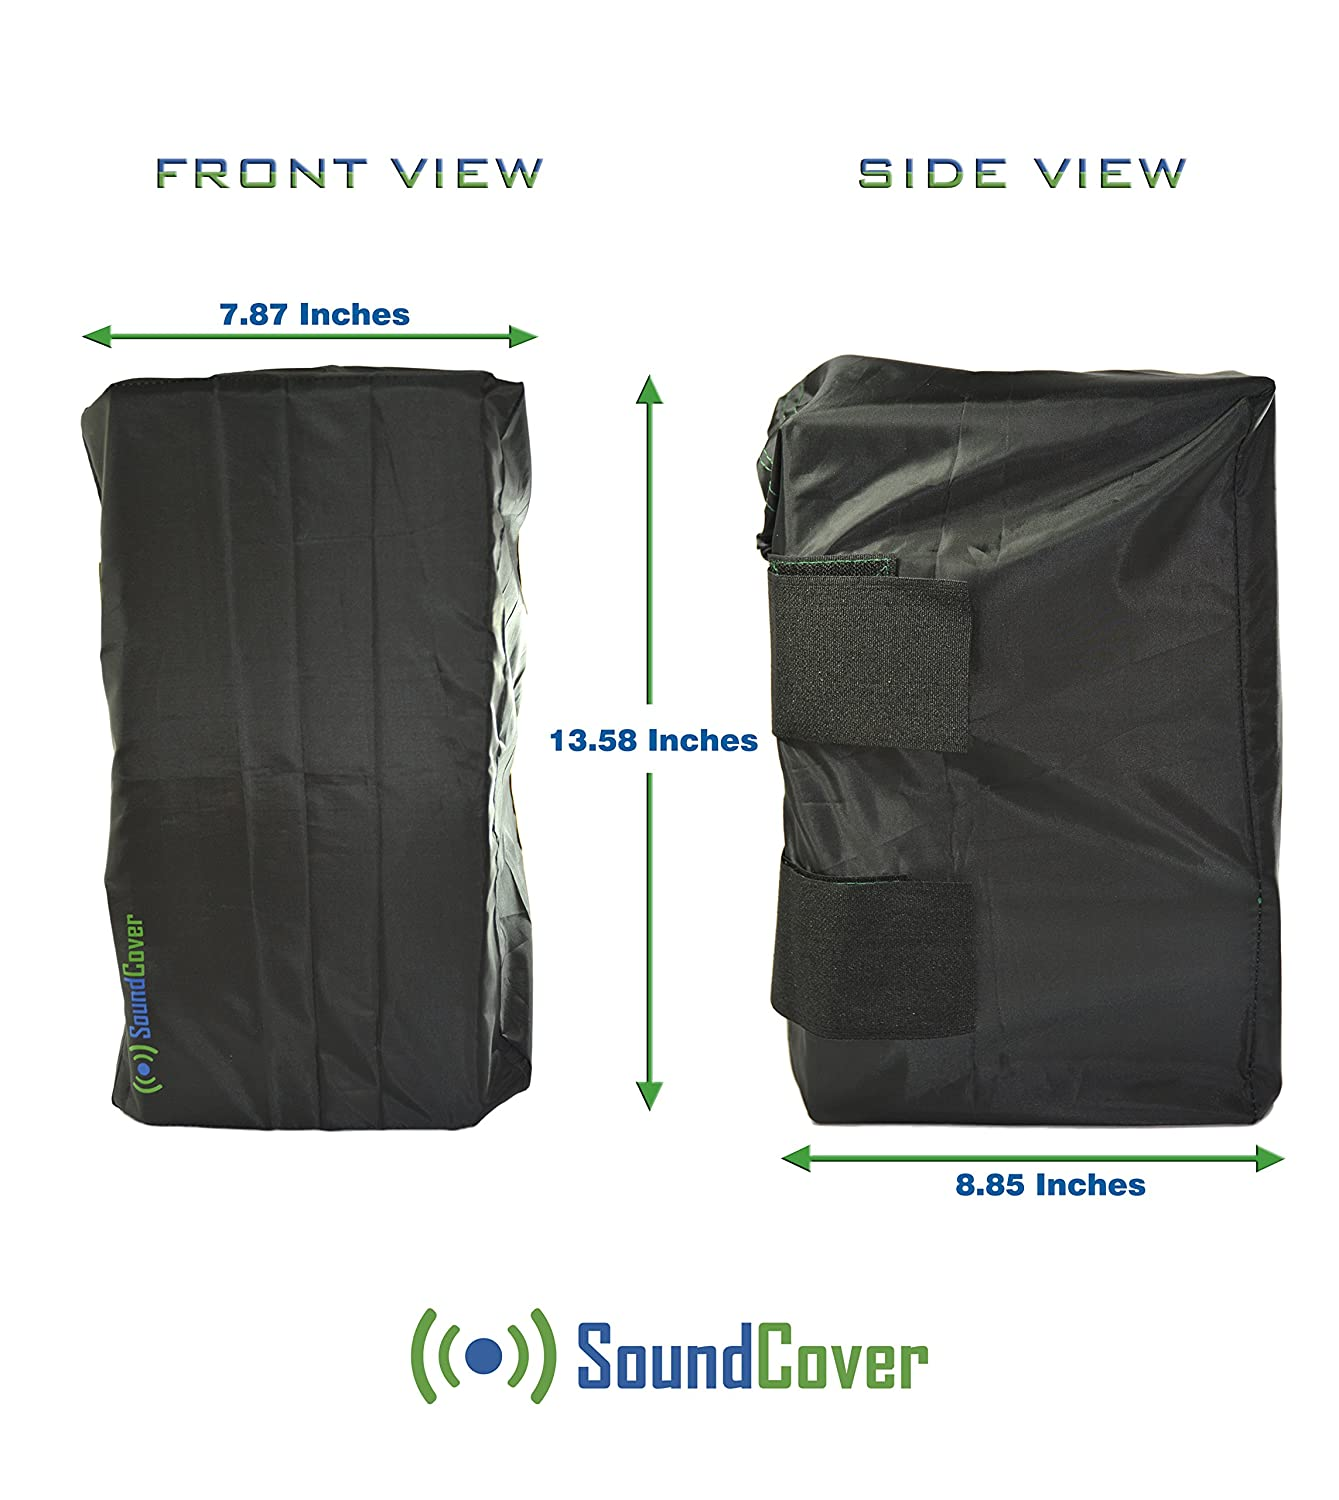 Sun / Dust / Water Protection for Outdoor Speakers - Two Covers for Yamaha AW294, Definitive Technology AW 5500, Polk Audio Atrium 6, Sound Appeal Bluetooth 6.5 & Bose 251 by Sound Cover (Two Covers) SC36